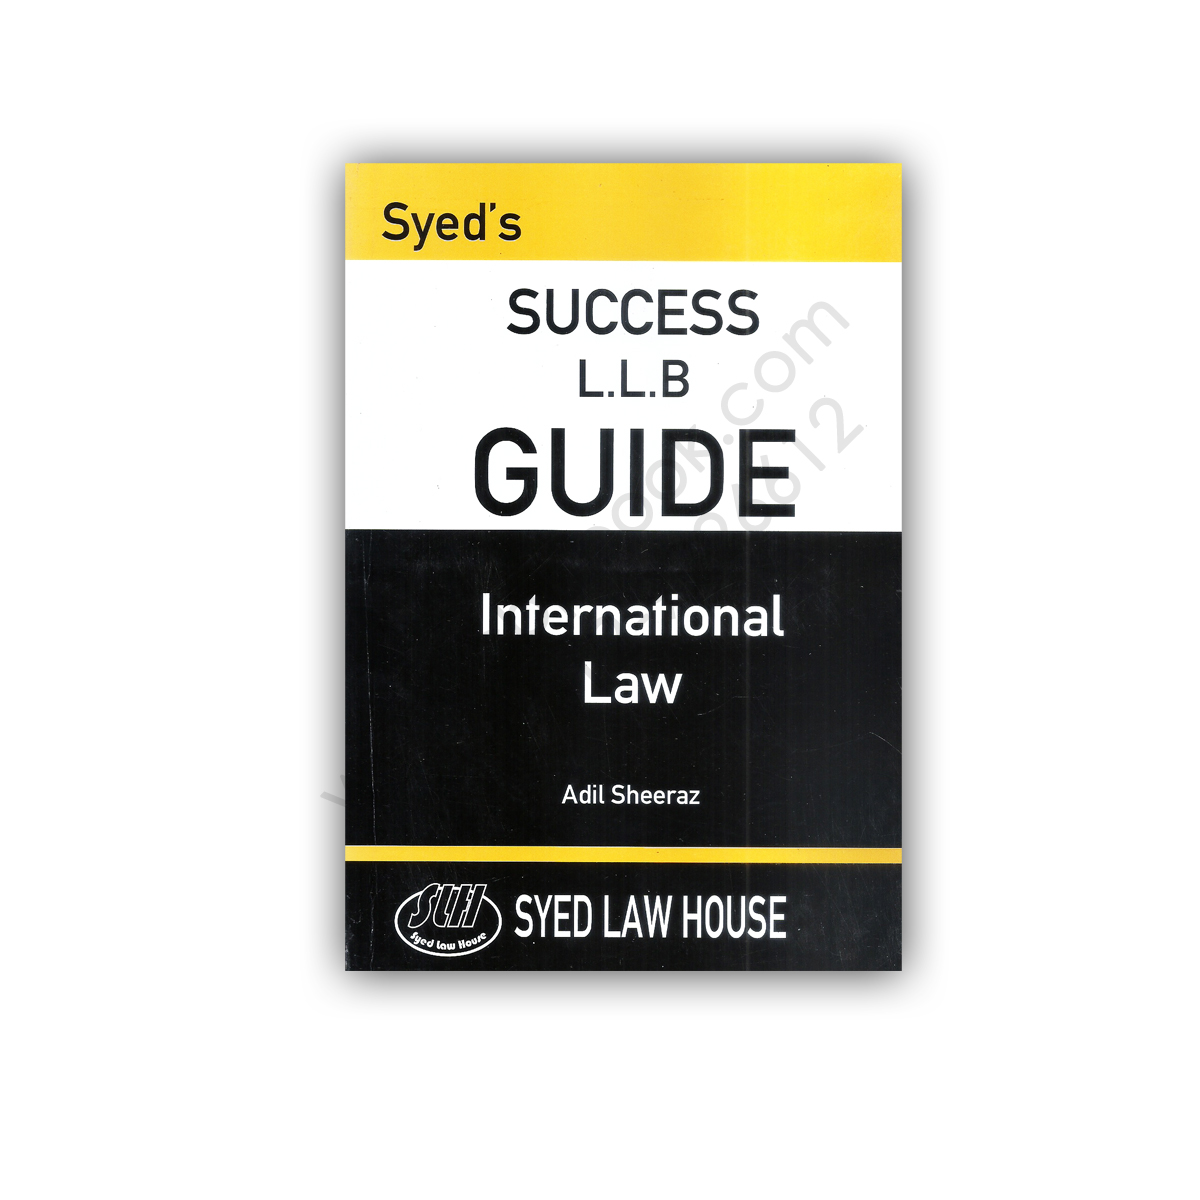 success llb guide international law adil sheeraz - syed law house